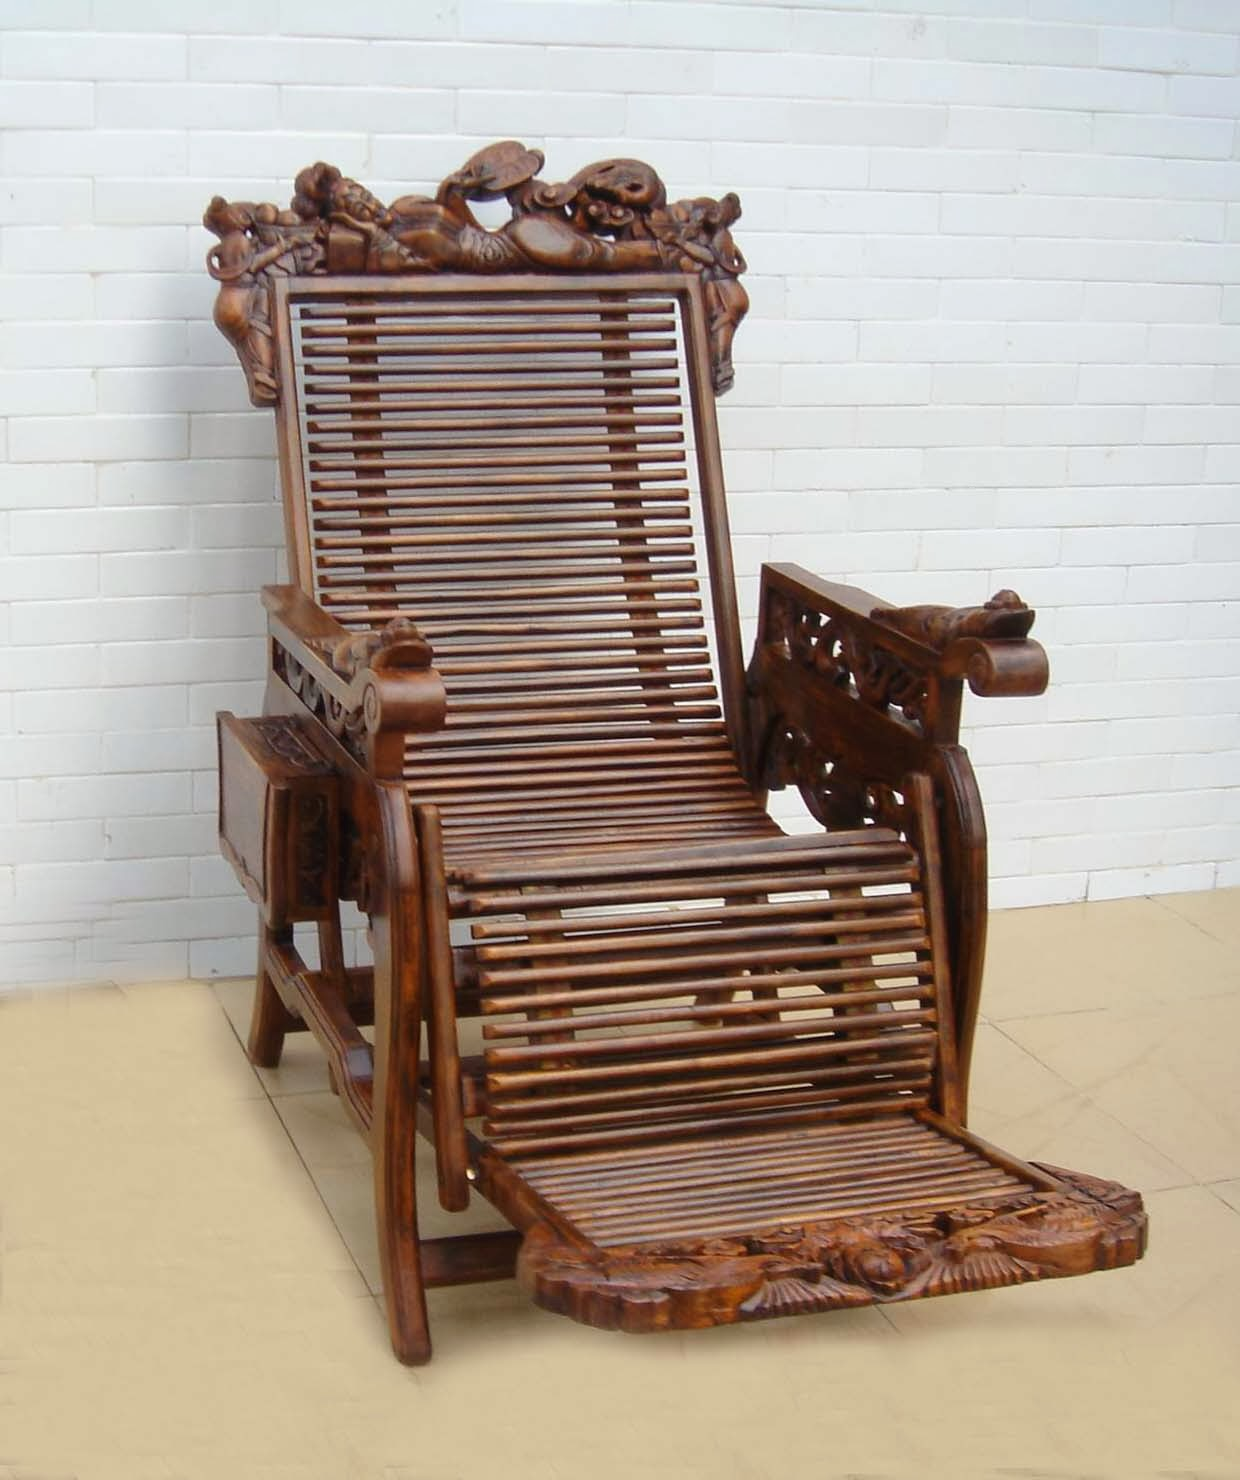 Antique Wooden Chair Give Your Home A Trendy 2014 Makeover Home Sweet Home